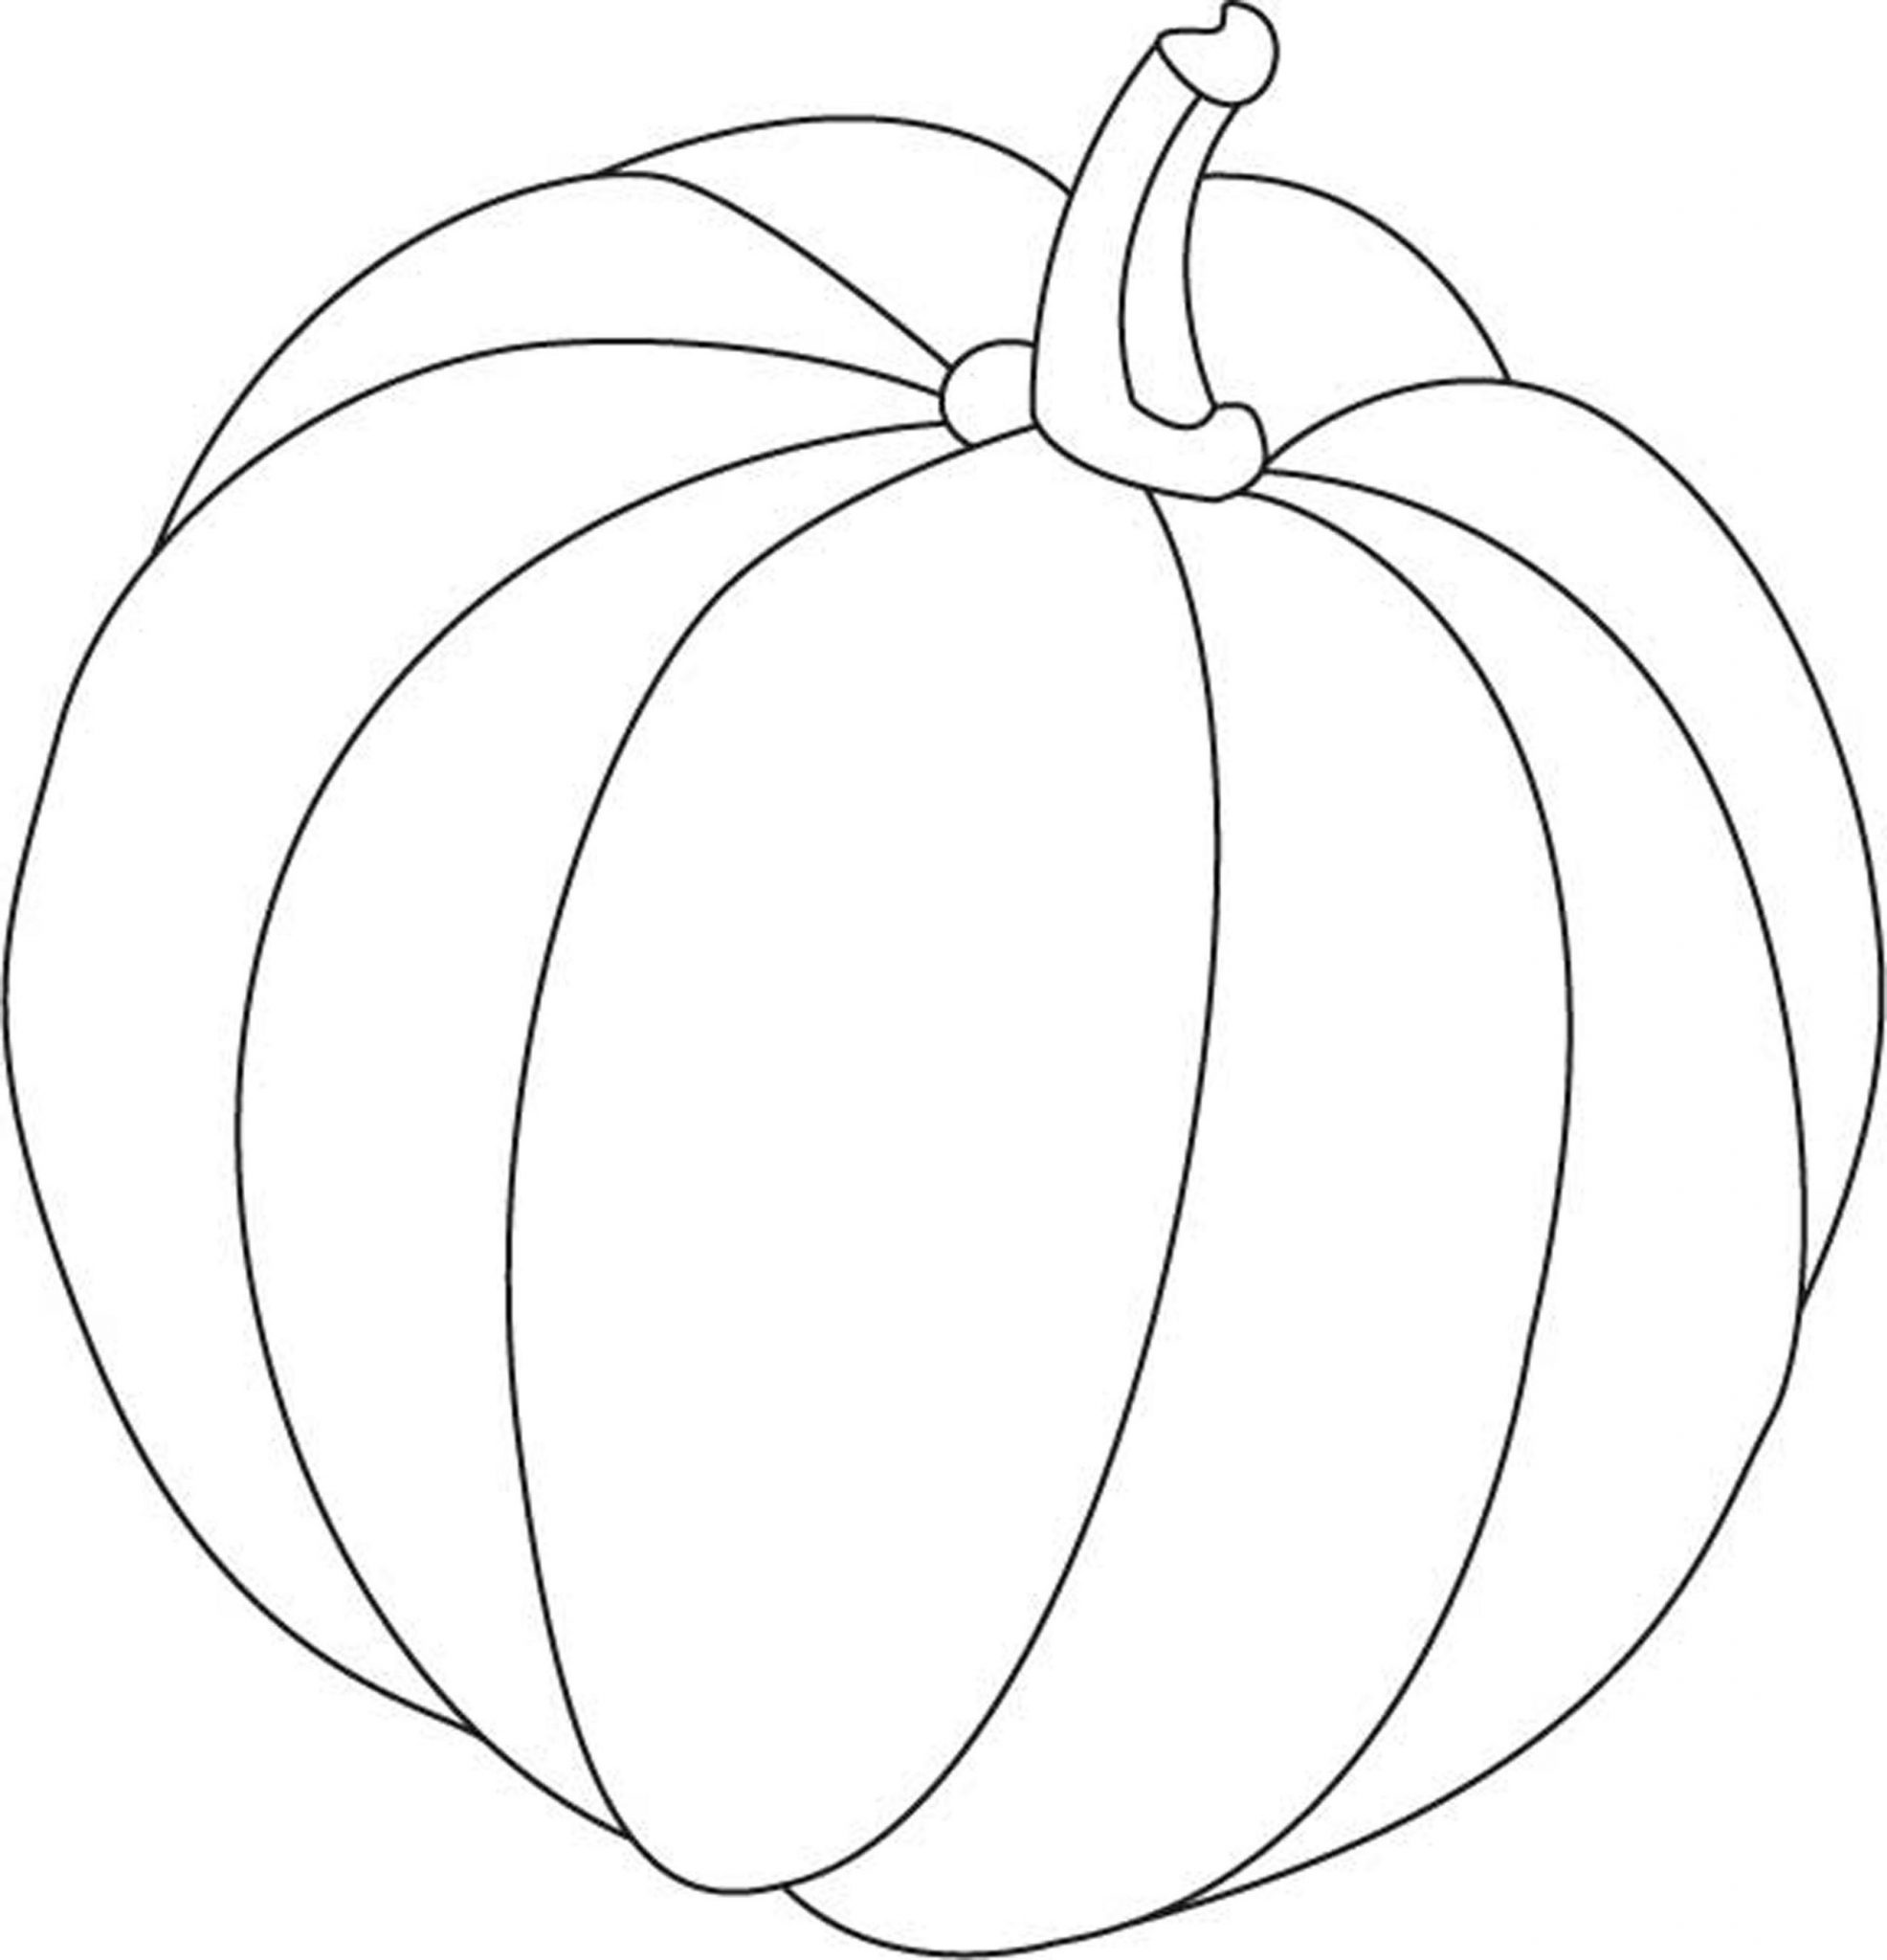 Print download pumpkin coloring pages and benefits of for Preschool pumpkin coloring pages